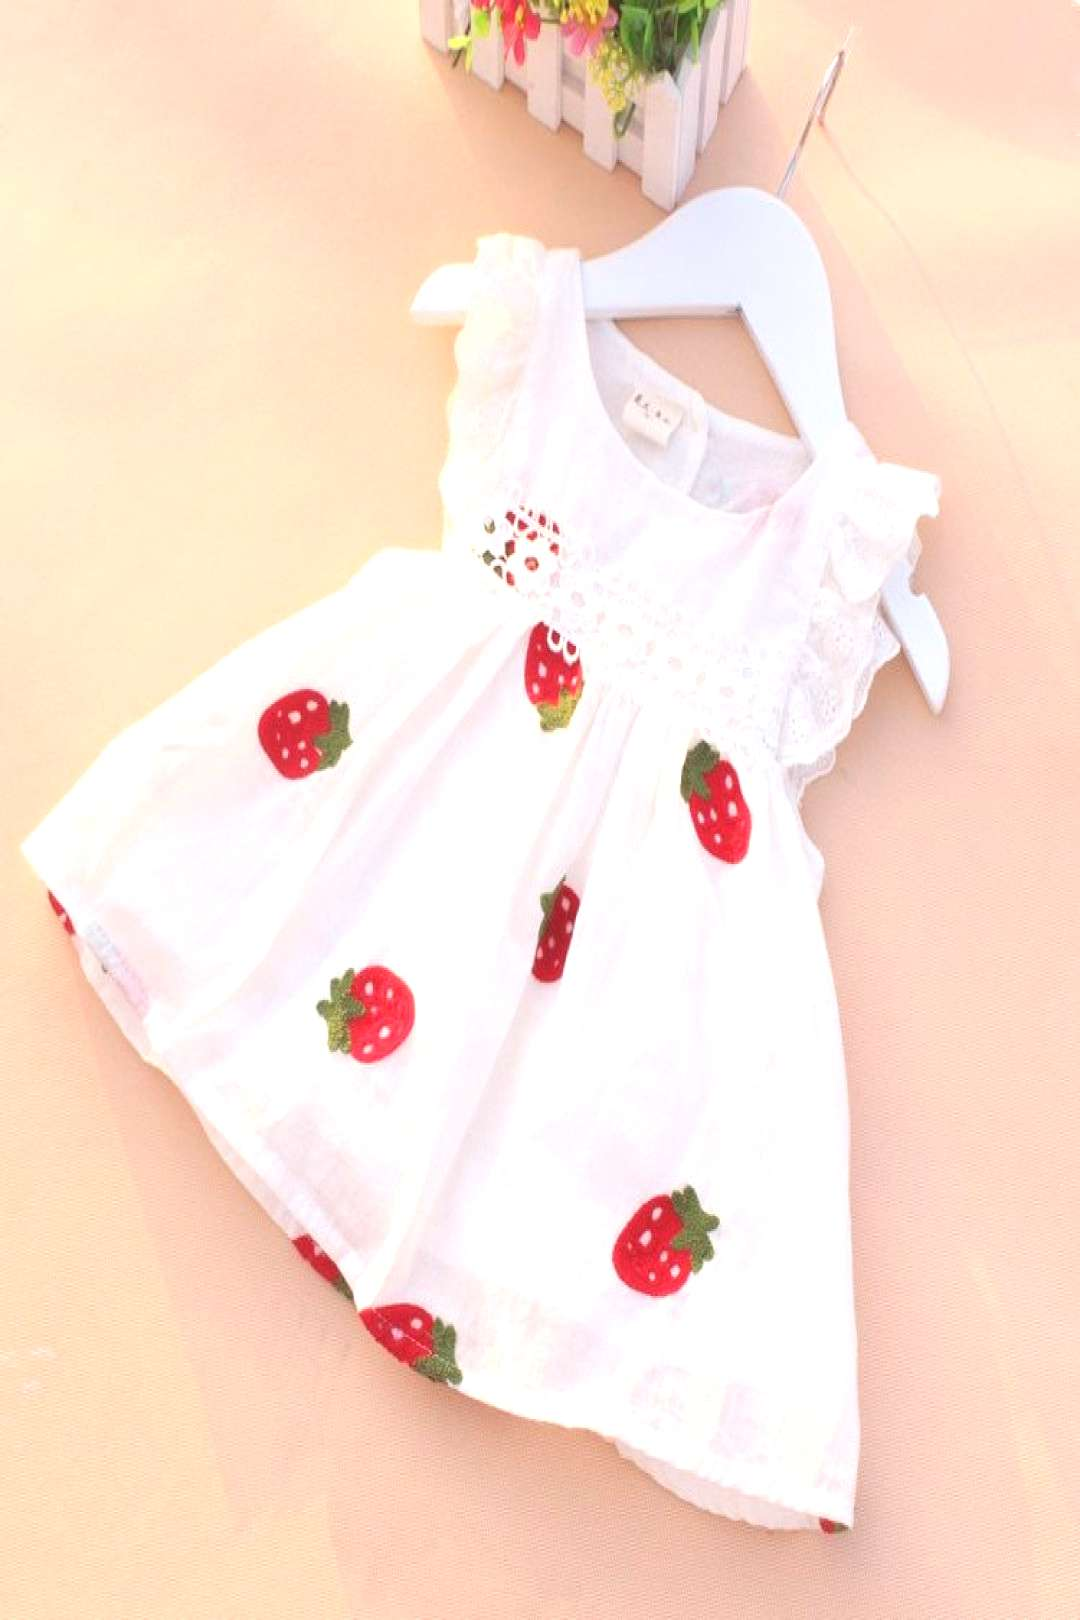 Baby Girl Dress 0-2Y Newborn Baby Summer Embroidery Flower Strawberry Cotton Dress Infant Baby 1Yea